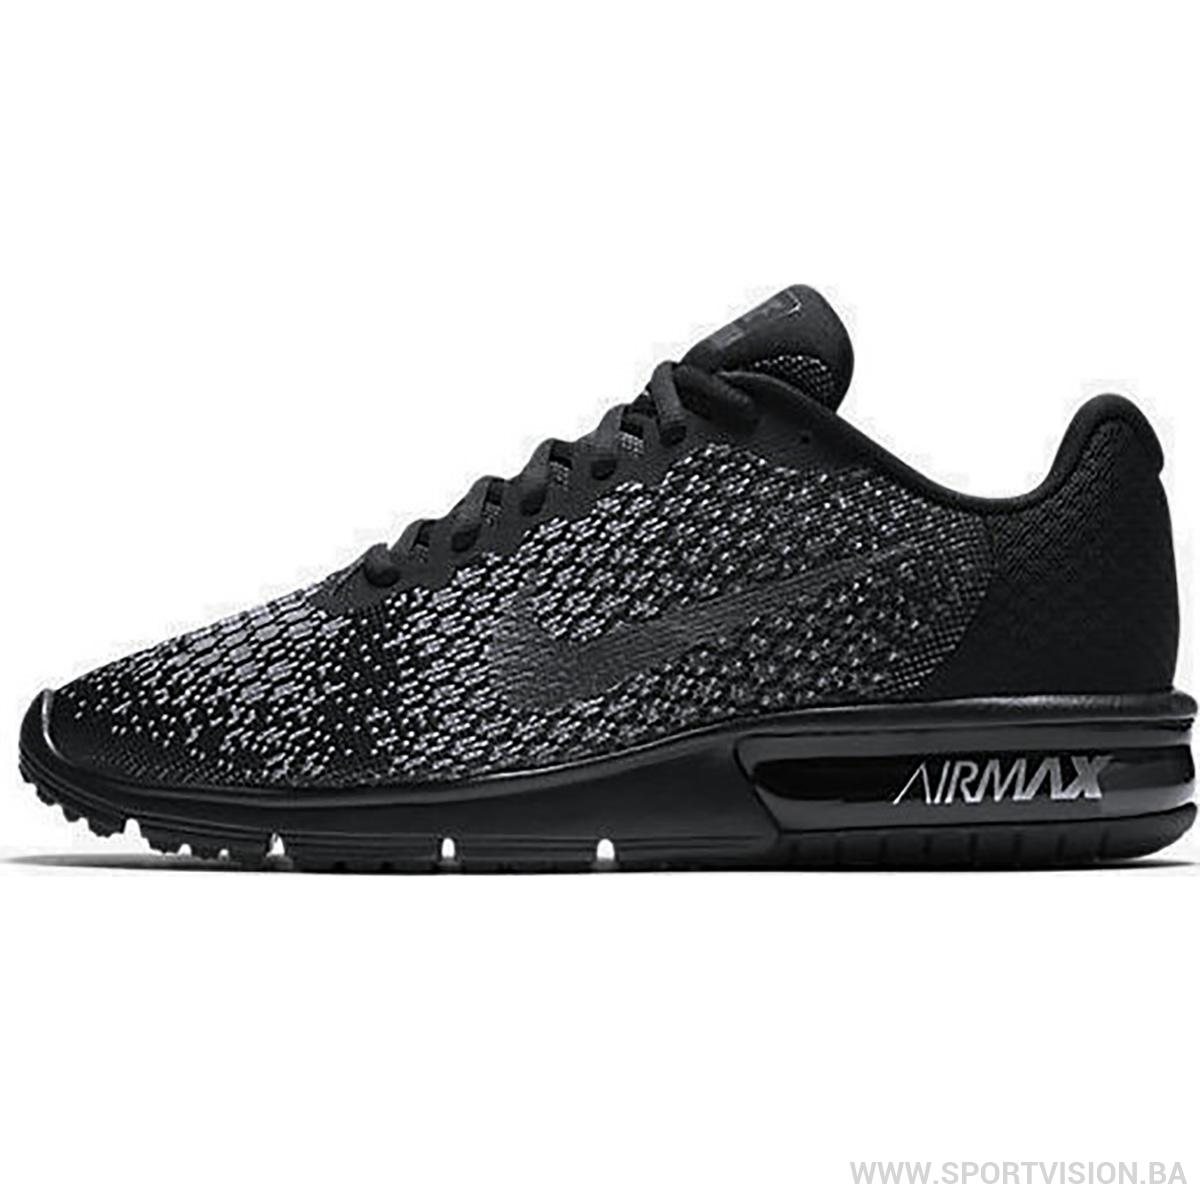 NIKE Patike MEN'S NIKE AIR MAX SEQUENT 2 RUNNING SHOE